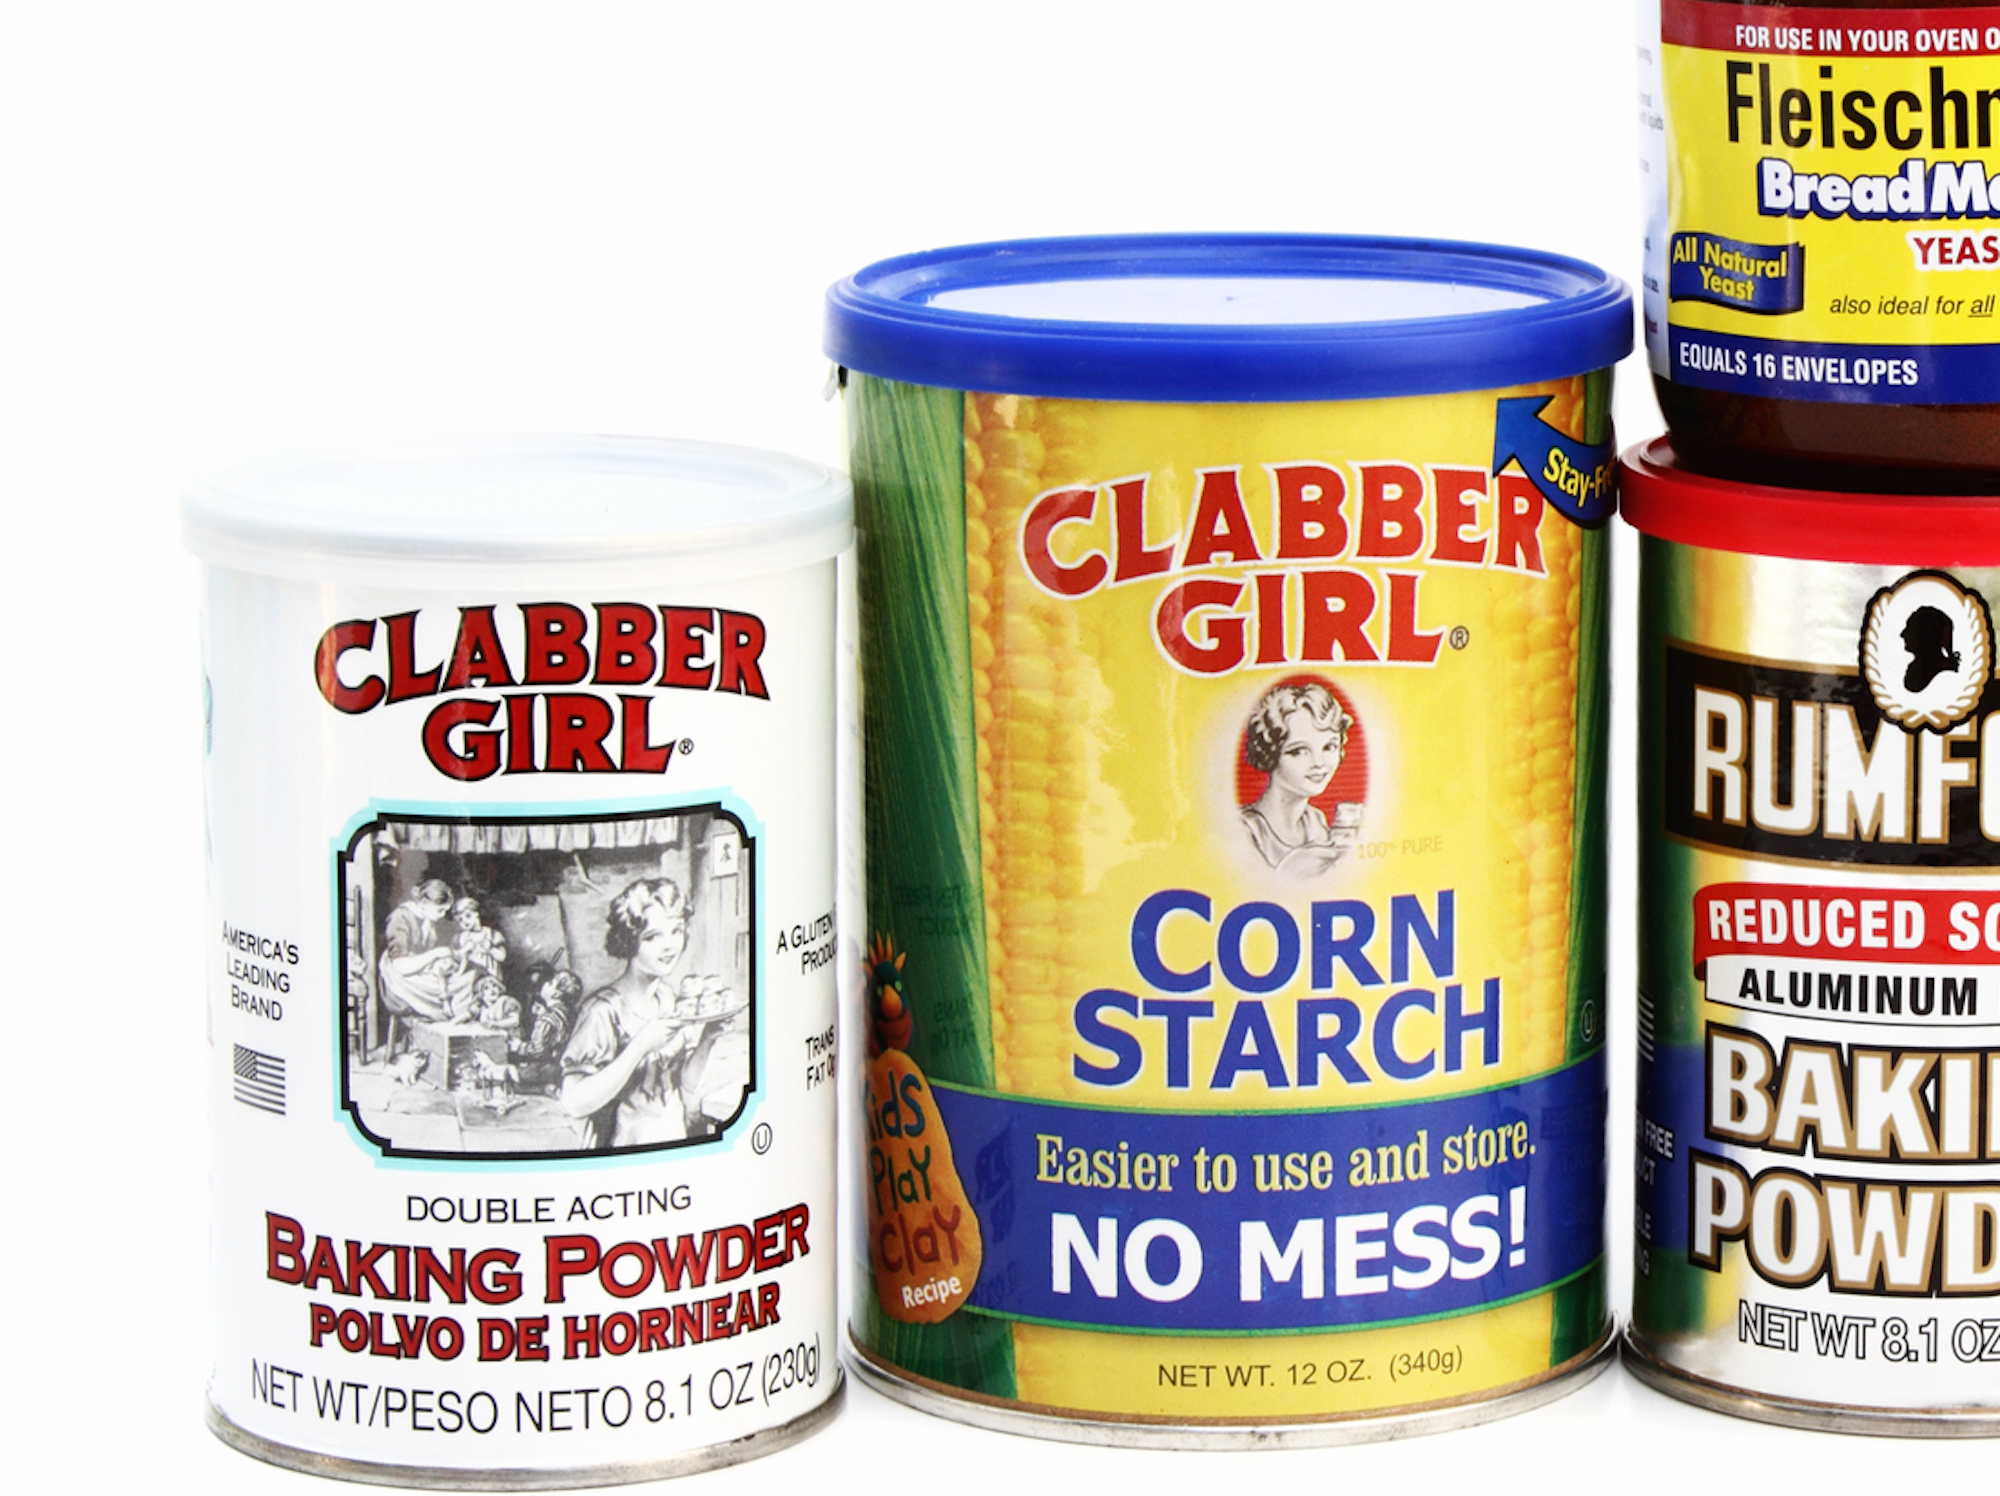 <p>West Palm Beach, USA - December 4, 2014: Studio shot of an assortment of cooking or baking ingredients, including Clabber Girl Baking Powder and Corn Starch, Rumford Baking Powder, Fleischmann's Yeast, and McCormick Black Pepper.</p>